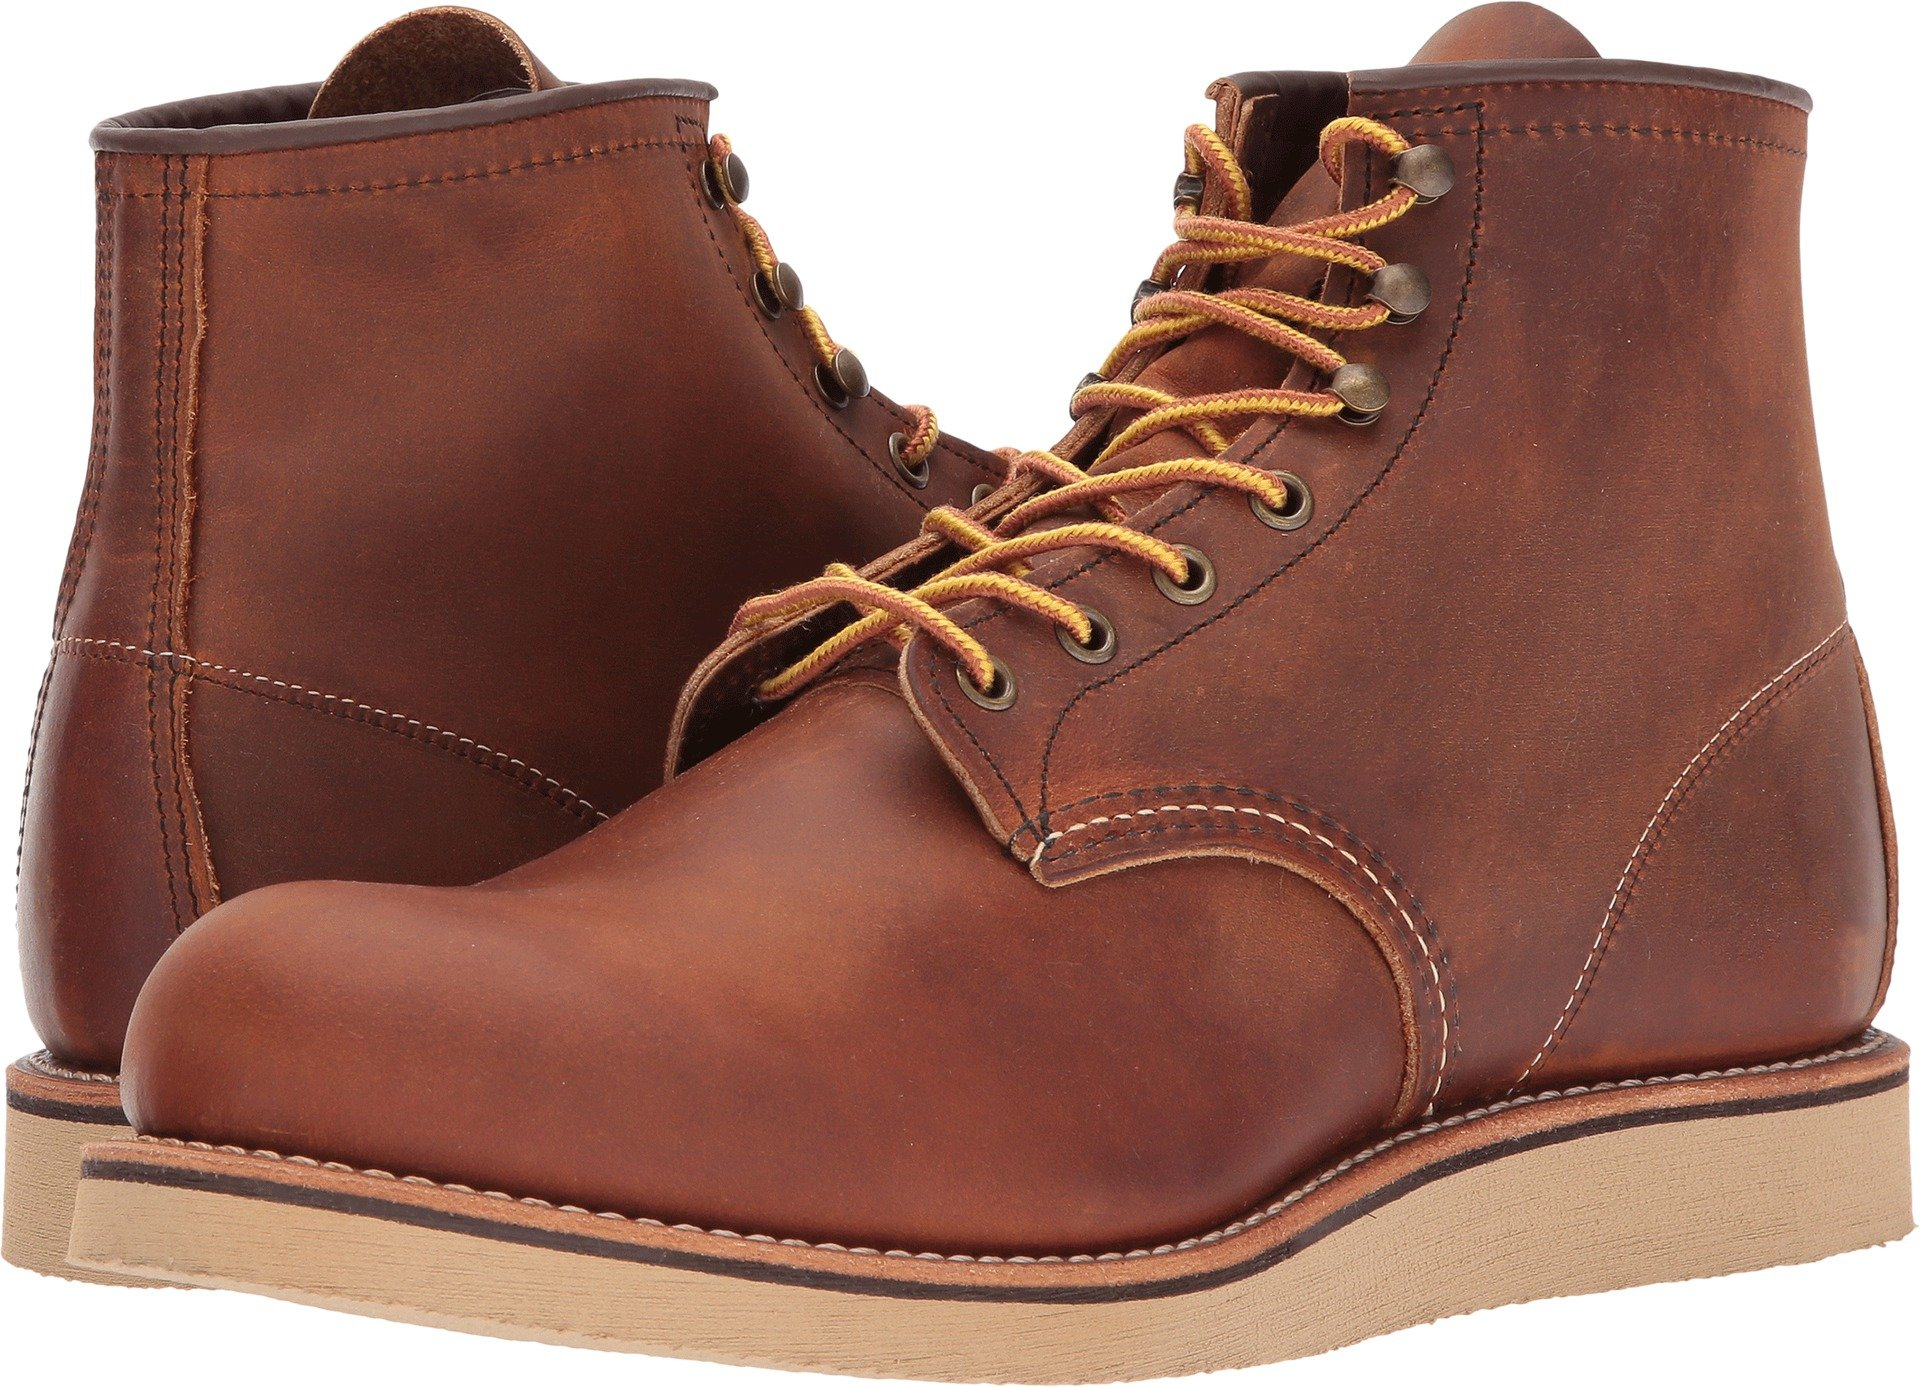 Red Wing Rover Boots 12 D(M) US Copper Rough & Tough